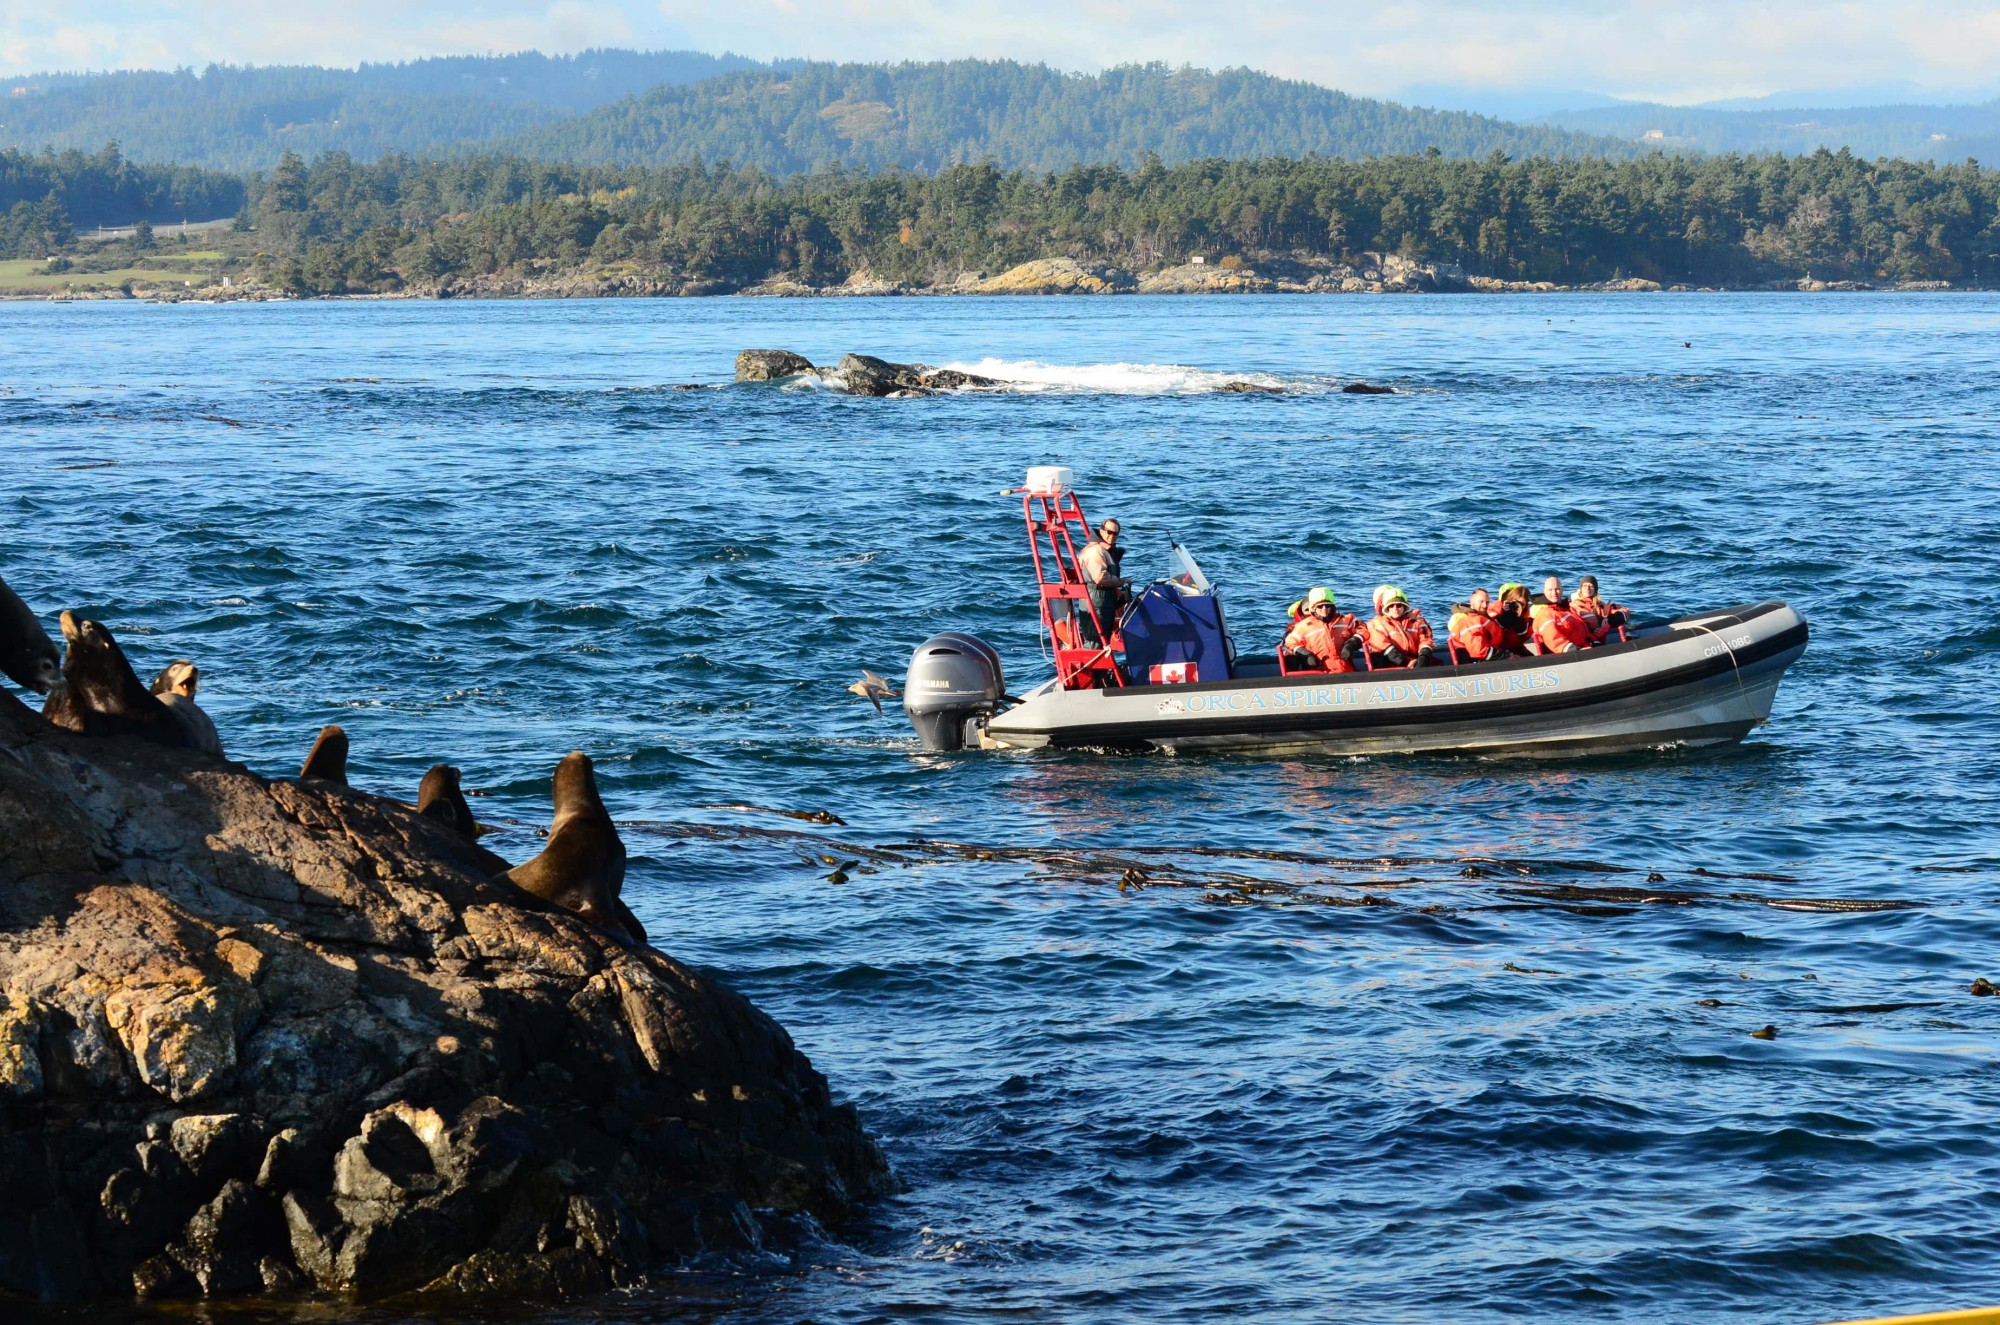 November 9, 2015 Whale watching closer than is allowed by the guidelines